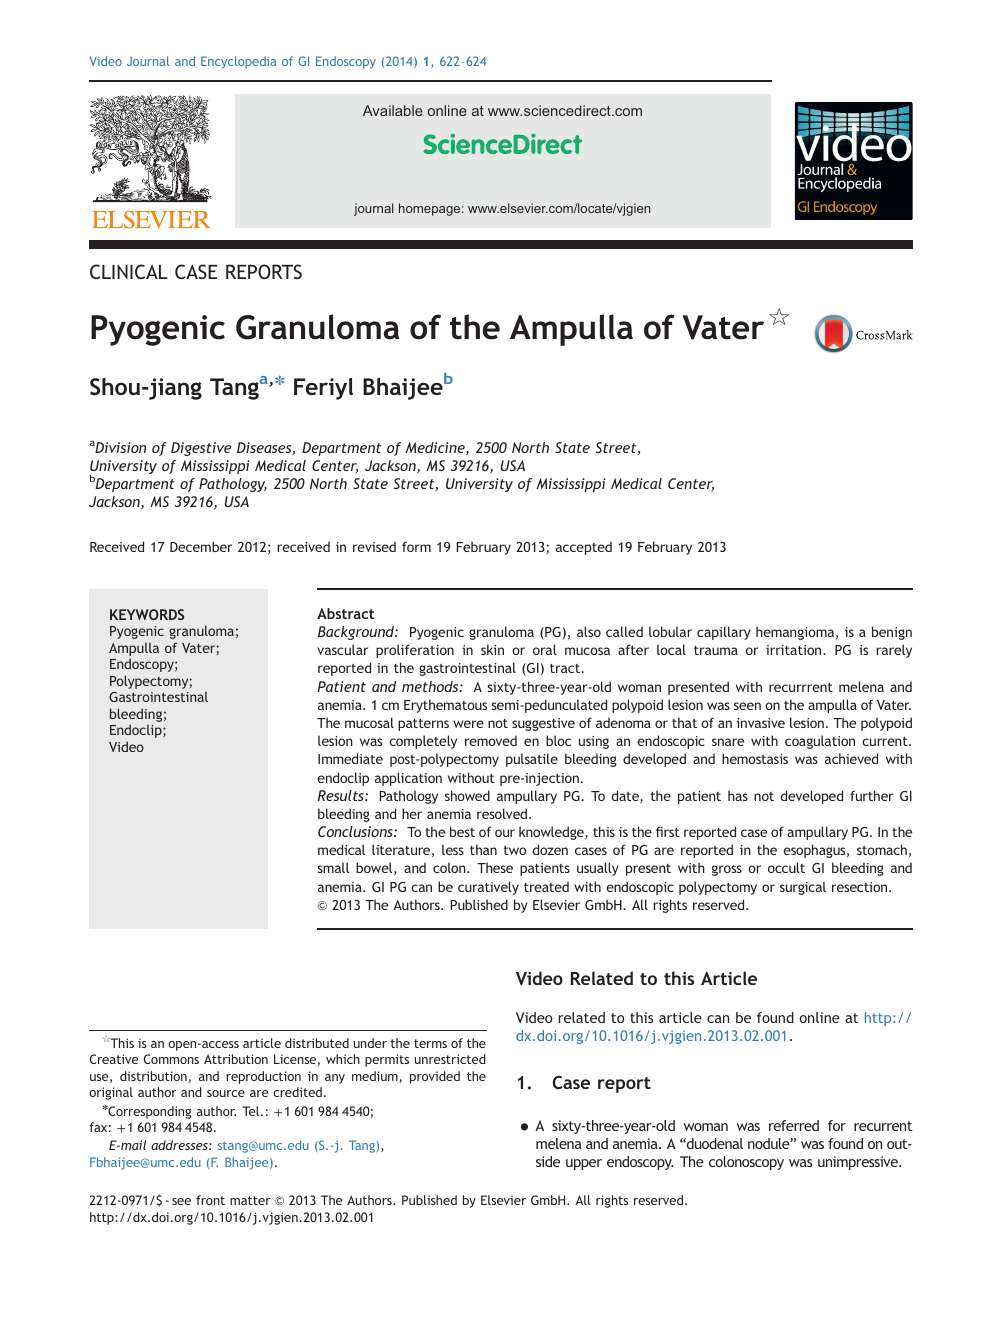 Pyogenic Granuloma of the Ampulla of Vater – topic of